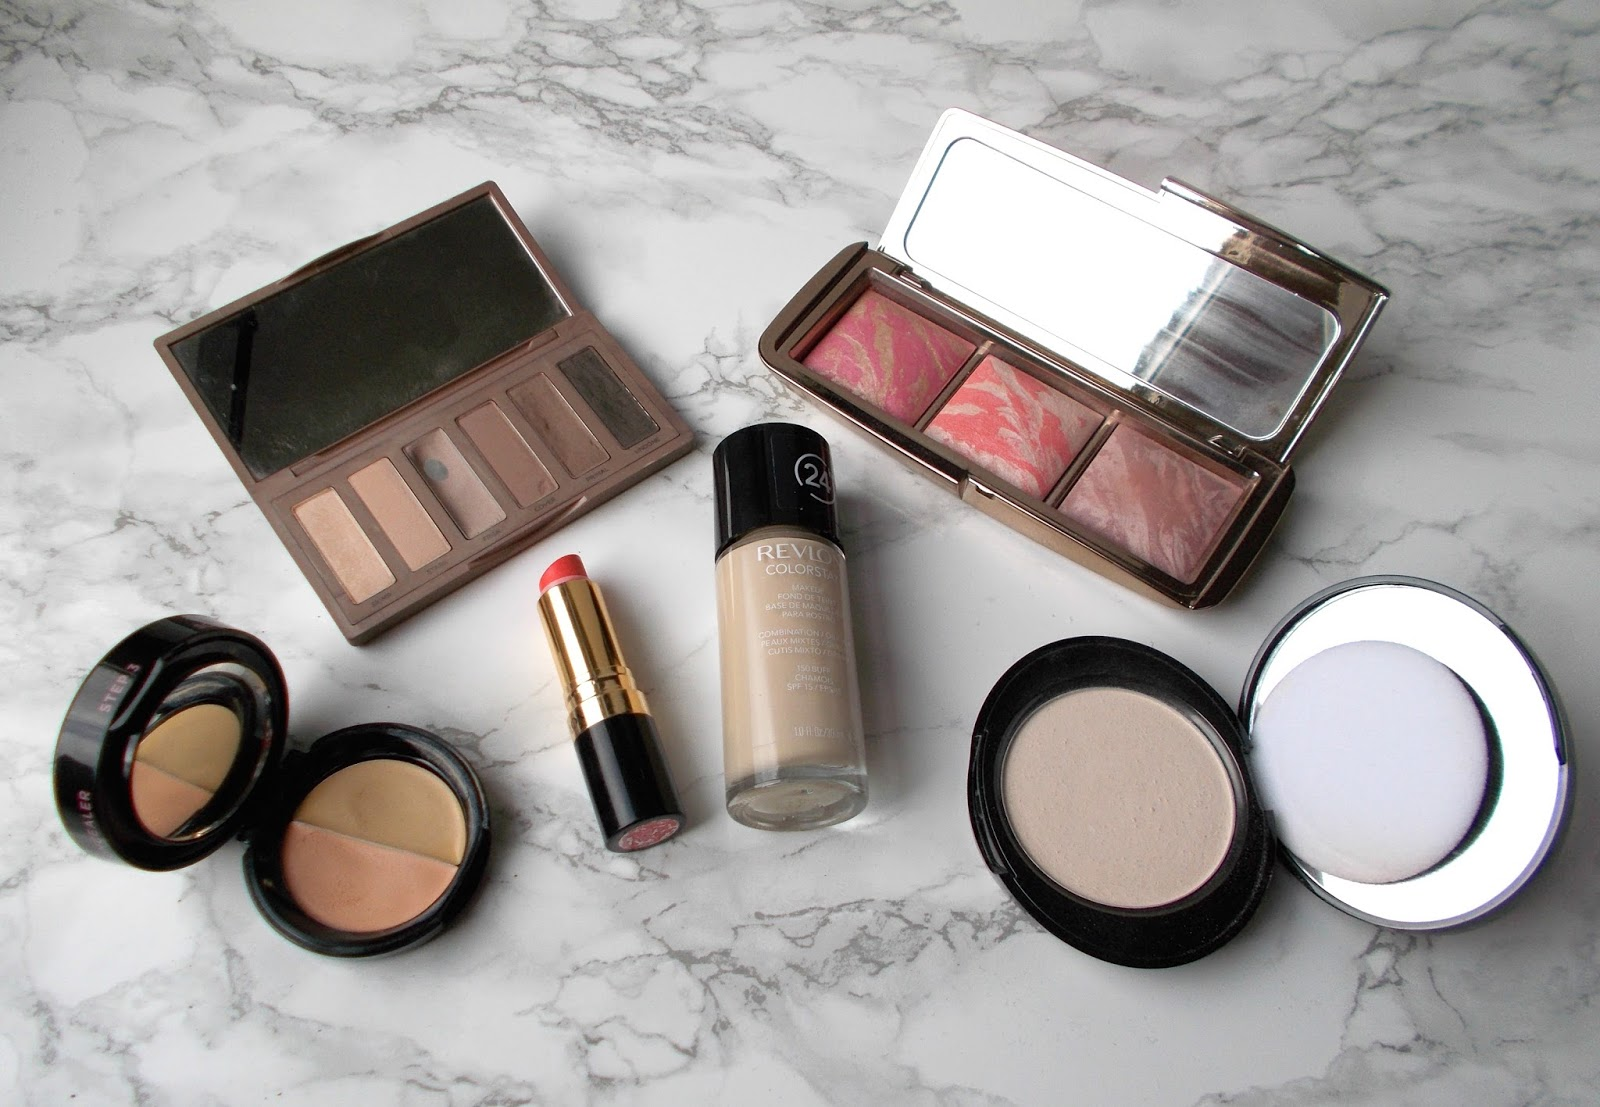 most used makeup hourglass blush urban decay naked basics 2 revlon colorstay lovers coral no7 perfect light powder soap and glory concealer